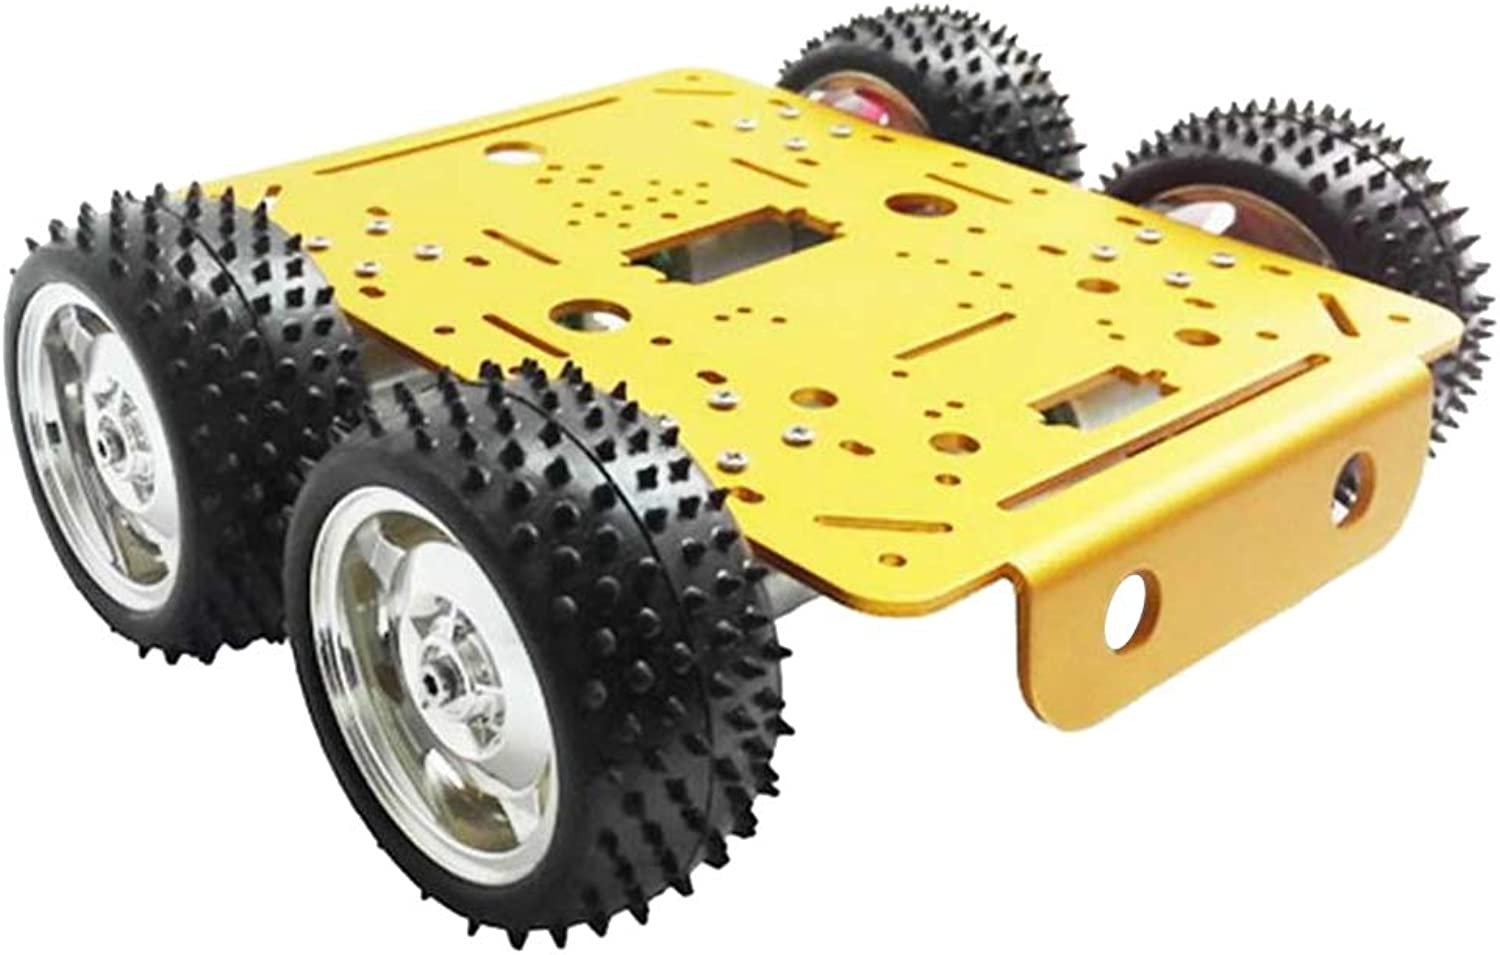 B Blesiya C300 4wd Roboter Rad Auto Fahrgestell Kits Fernbedienung DIY Spielzeug Smart Track Modell  yellowes Chassis